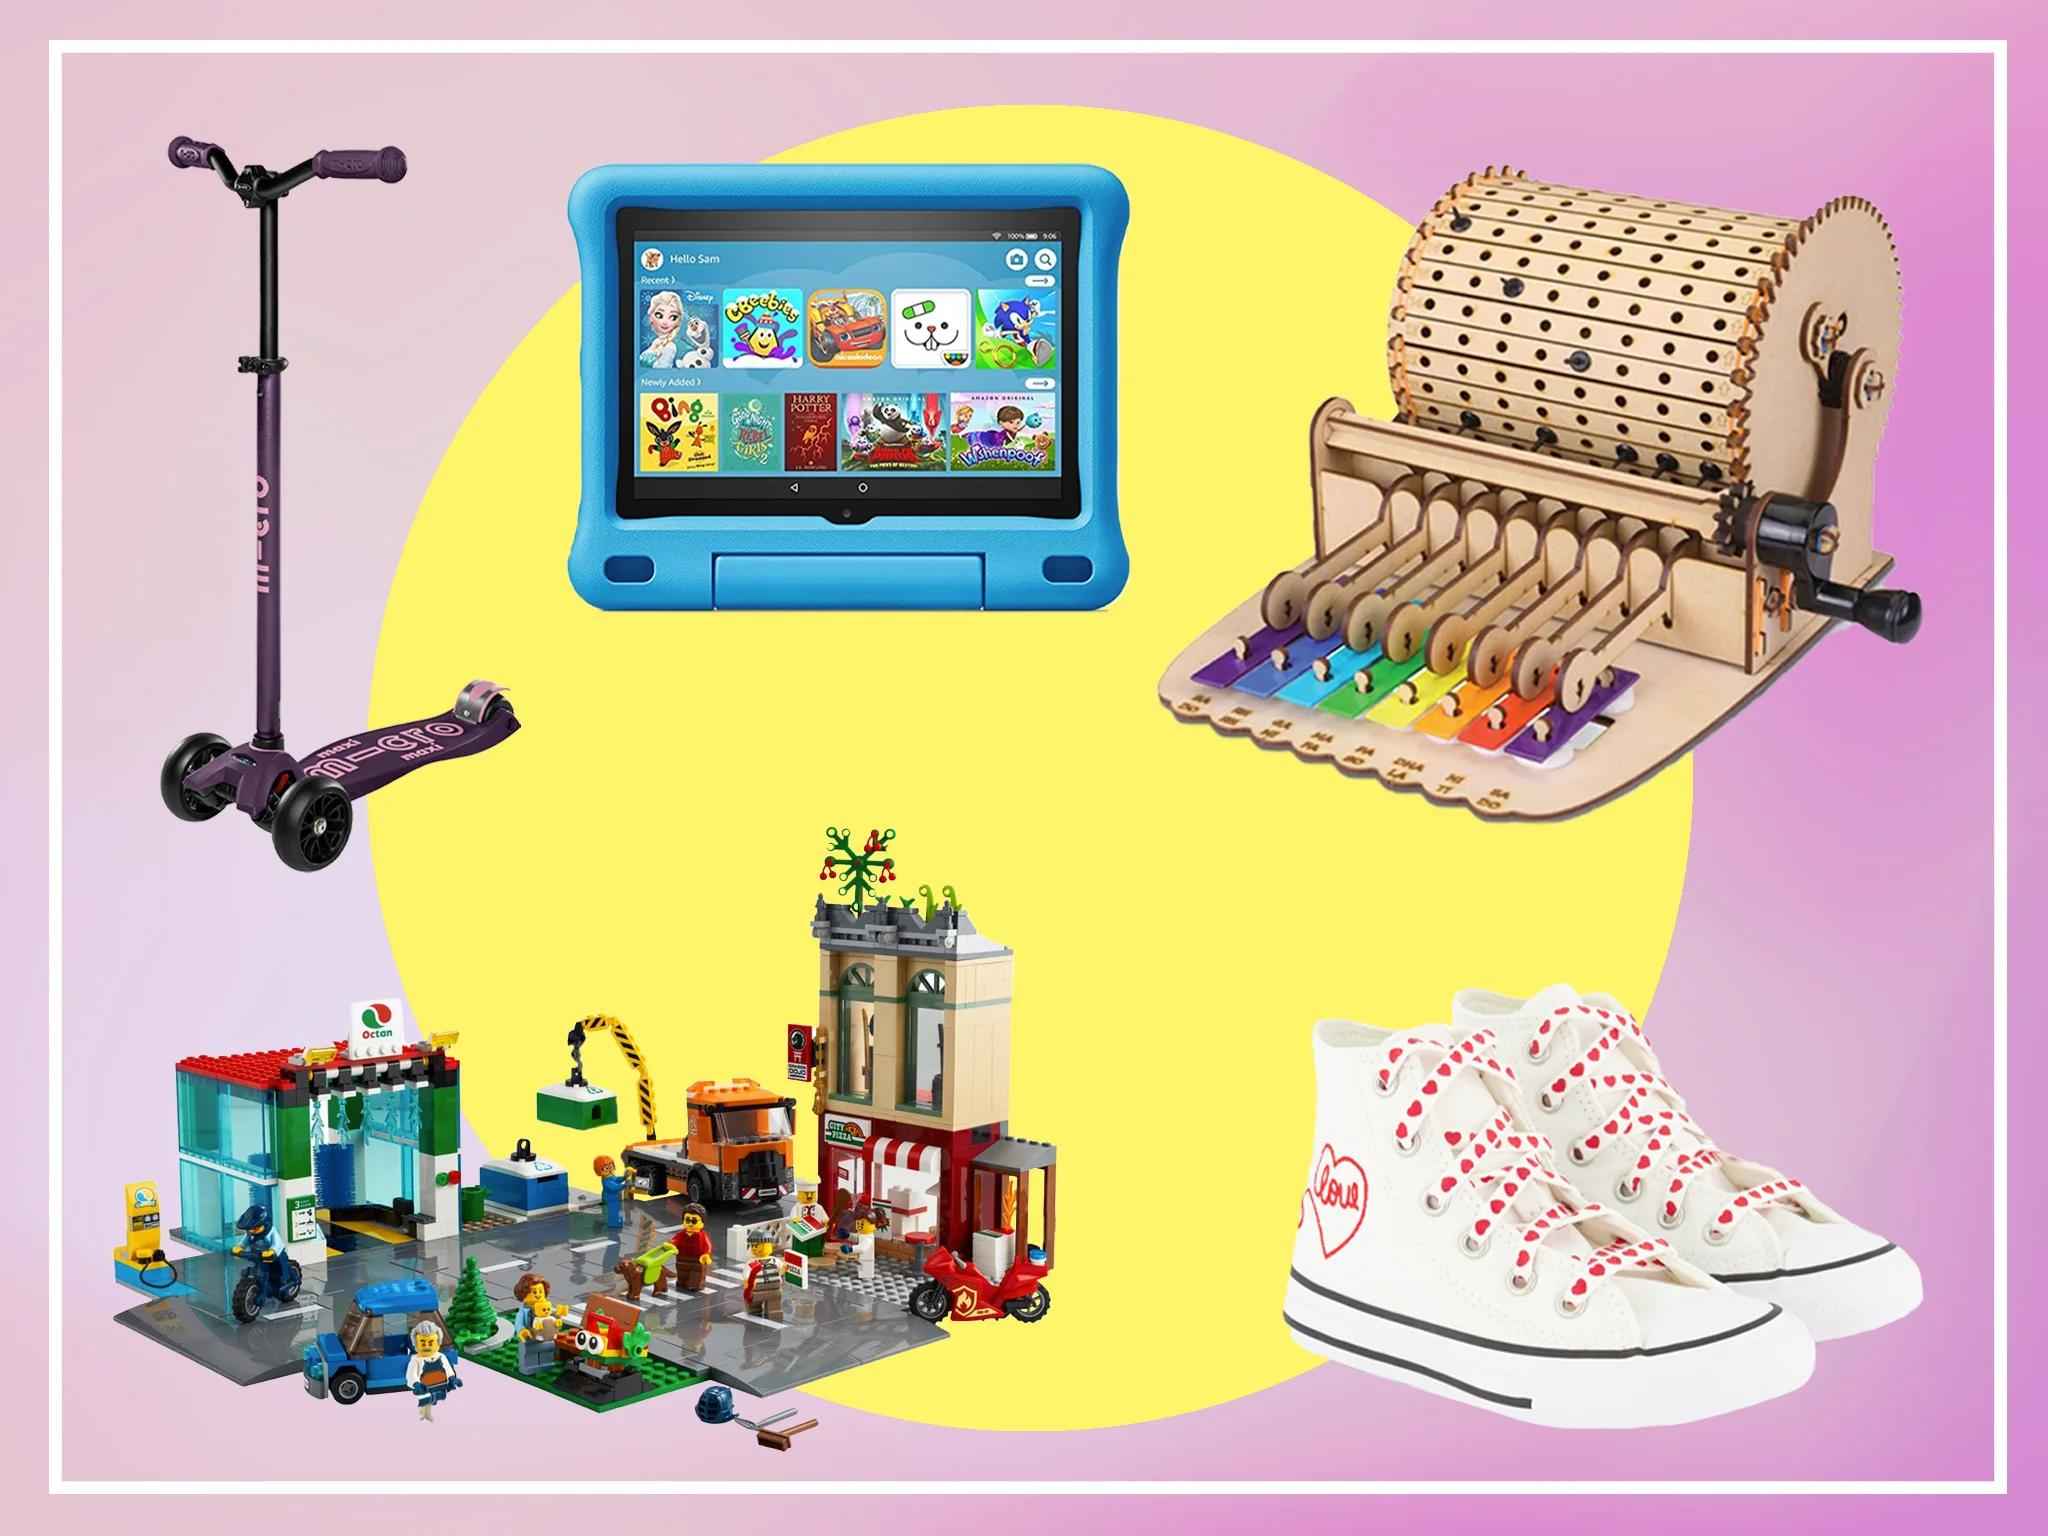 Best Gifts For 8 Year Old Boys And Girls 2021 Tablets Scooters And More The Independent